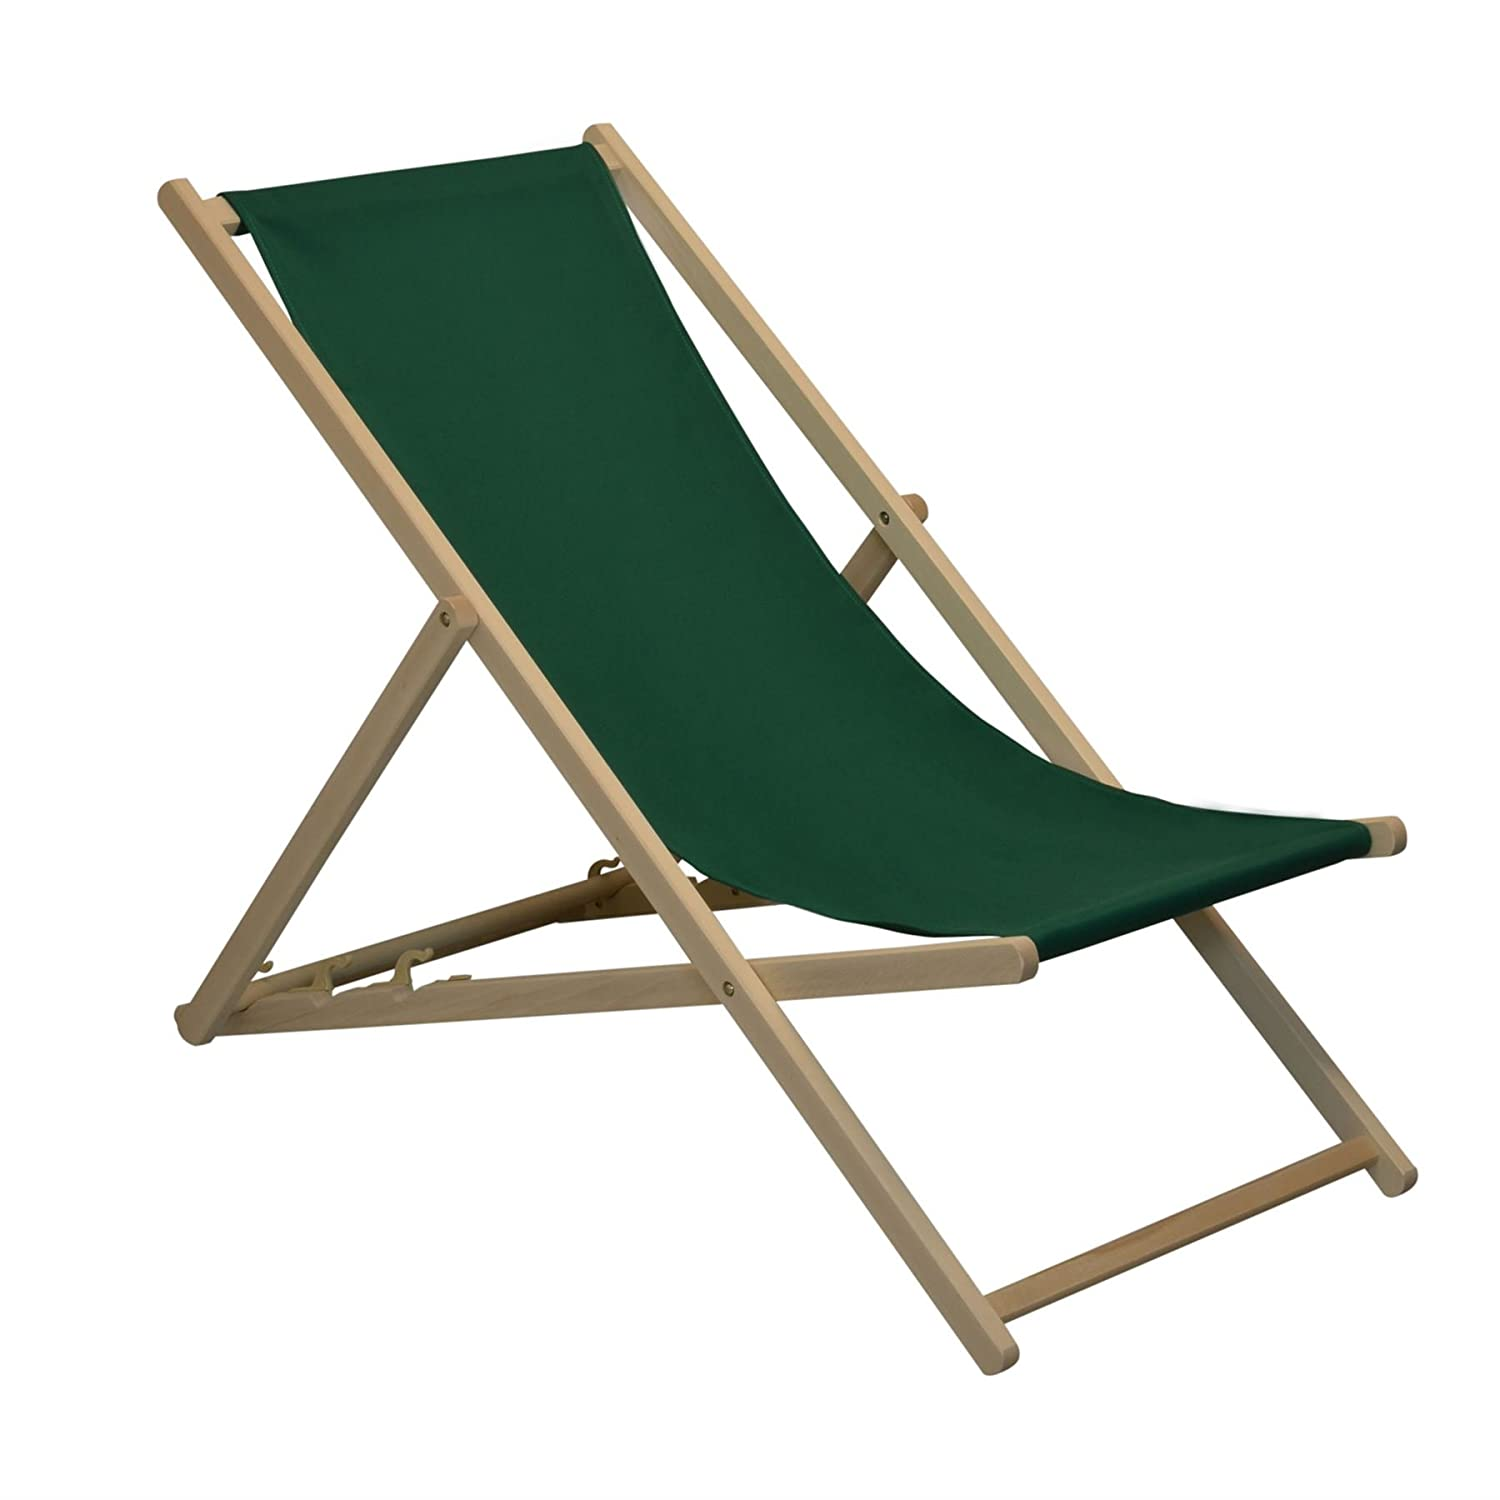 Traditional Adjustable Garden / Beach-style Deck Chair - Green Harbour Housewares